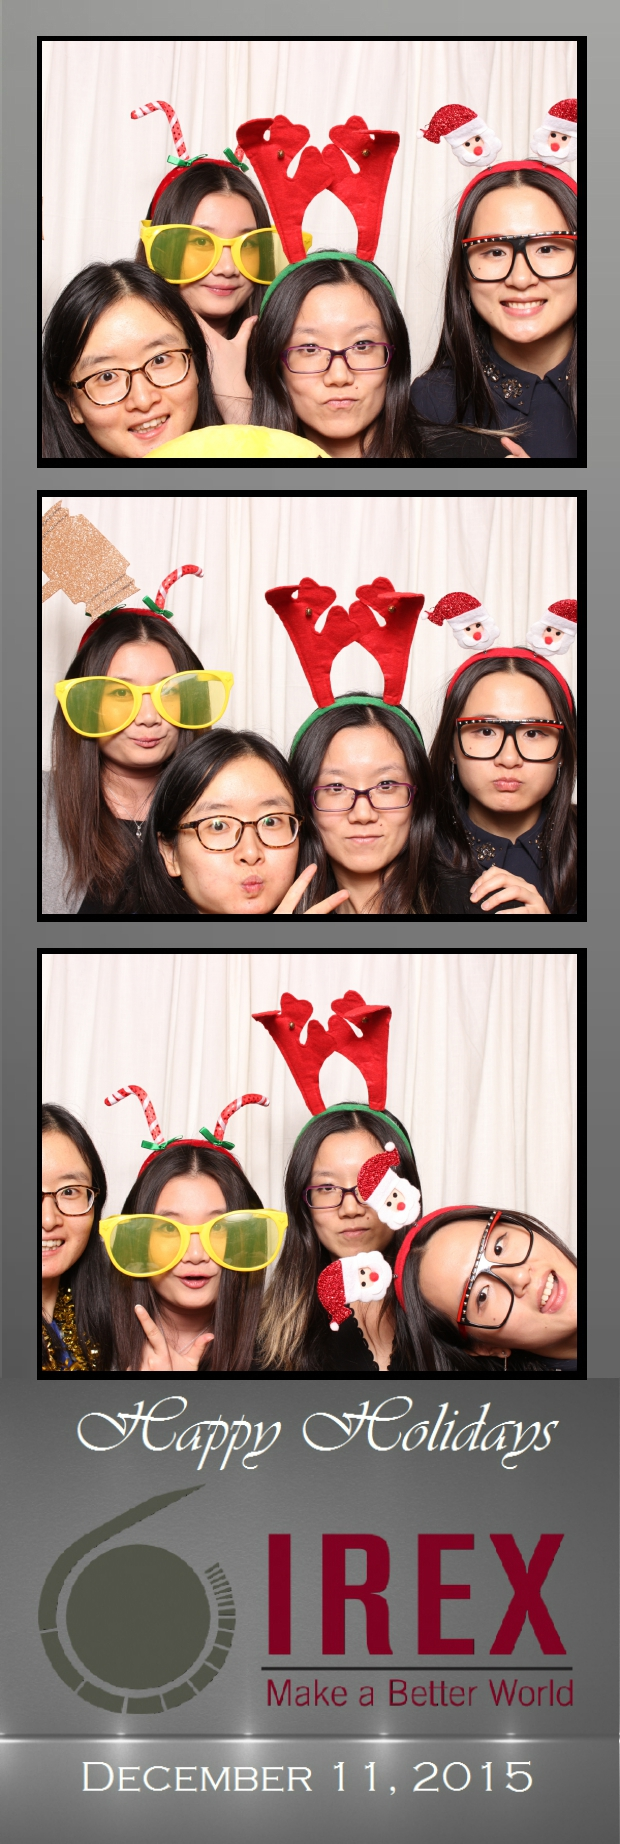 Guest House Events Photo Booth Strips IREX (95).jpg